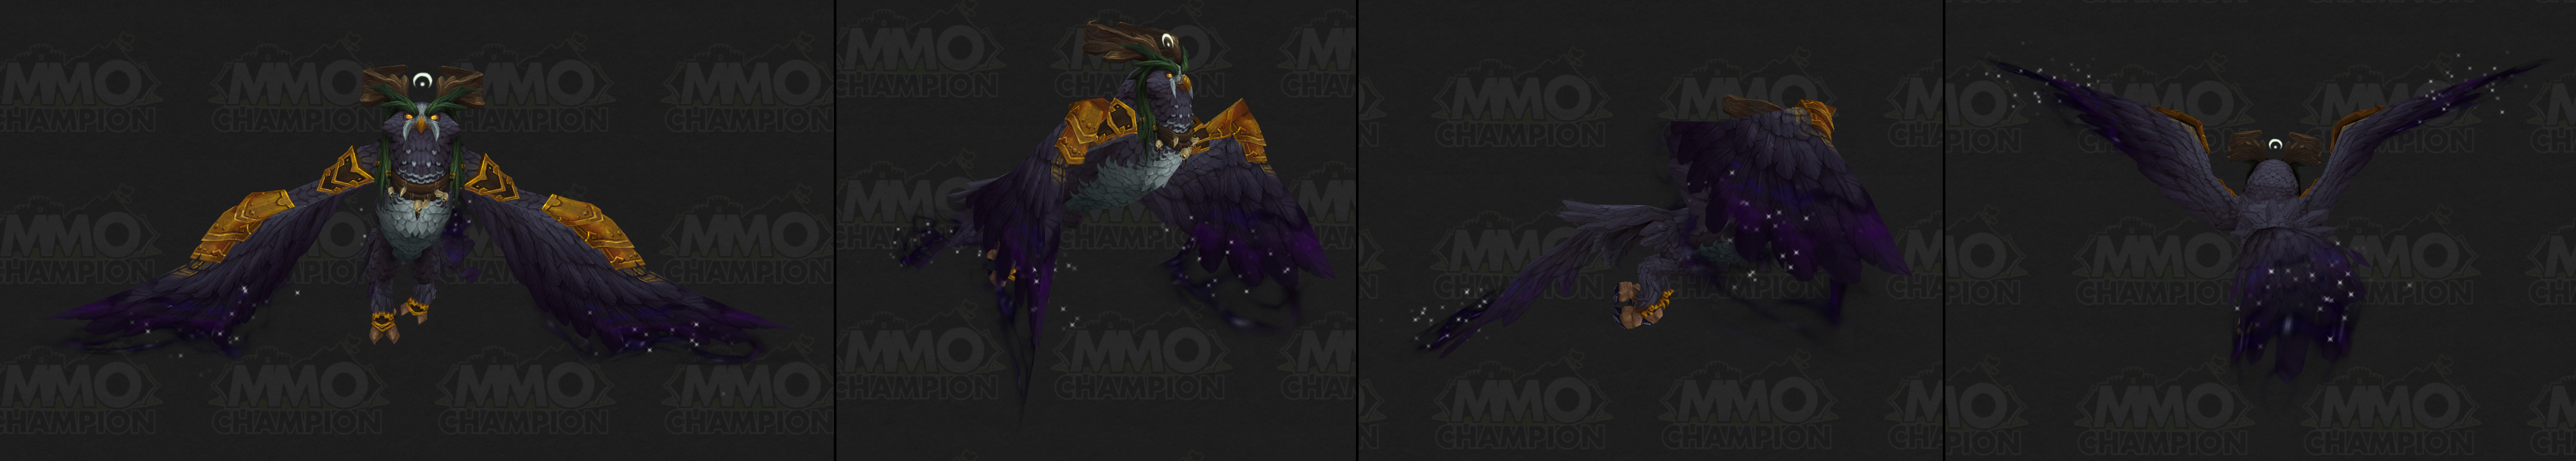 Patch 7.2: Updated Travel Form – The Dreamgrove